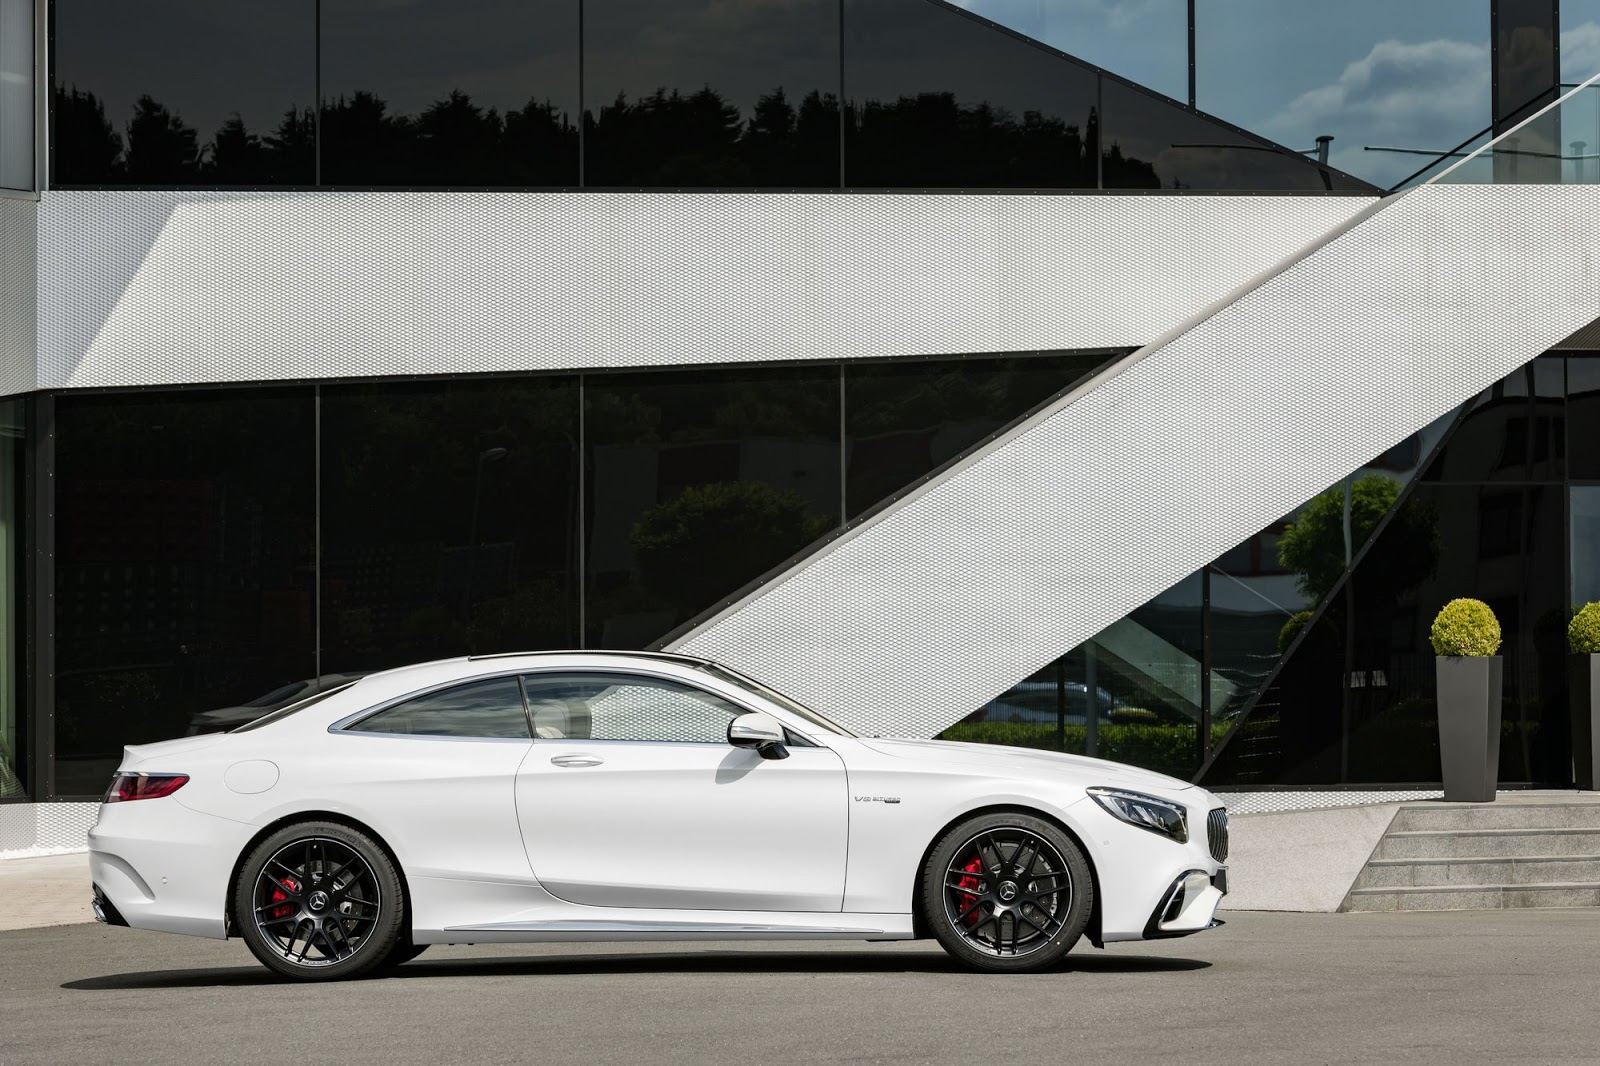 2018 Mercedes Amg S63 Amp S65 Coupe Amp Cabrio Get Refreshed